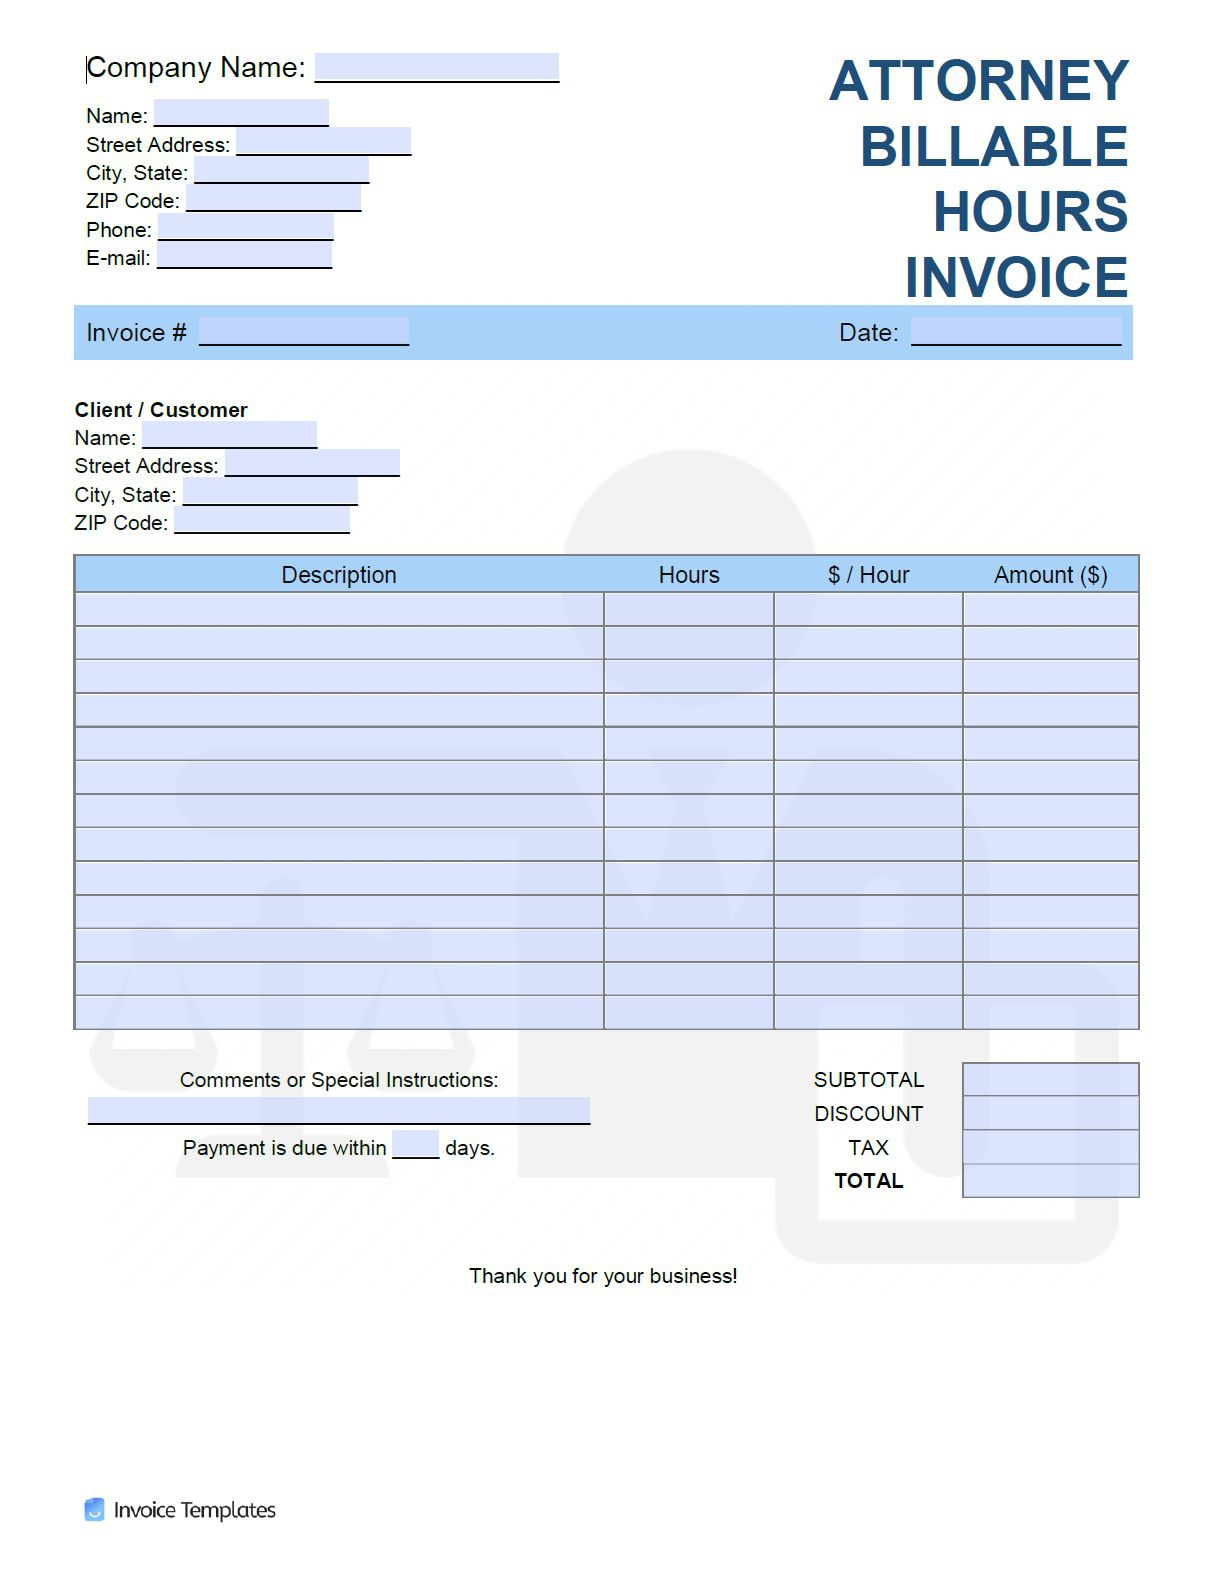 001 Unusual Billable Hour Template Excel Free Sample Full